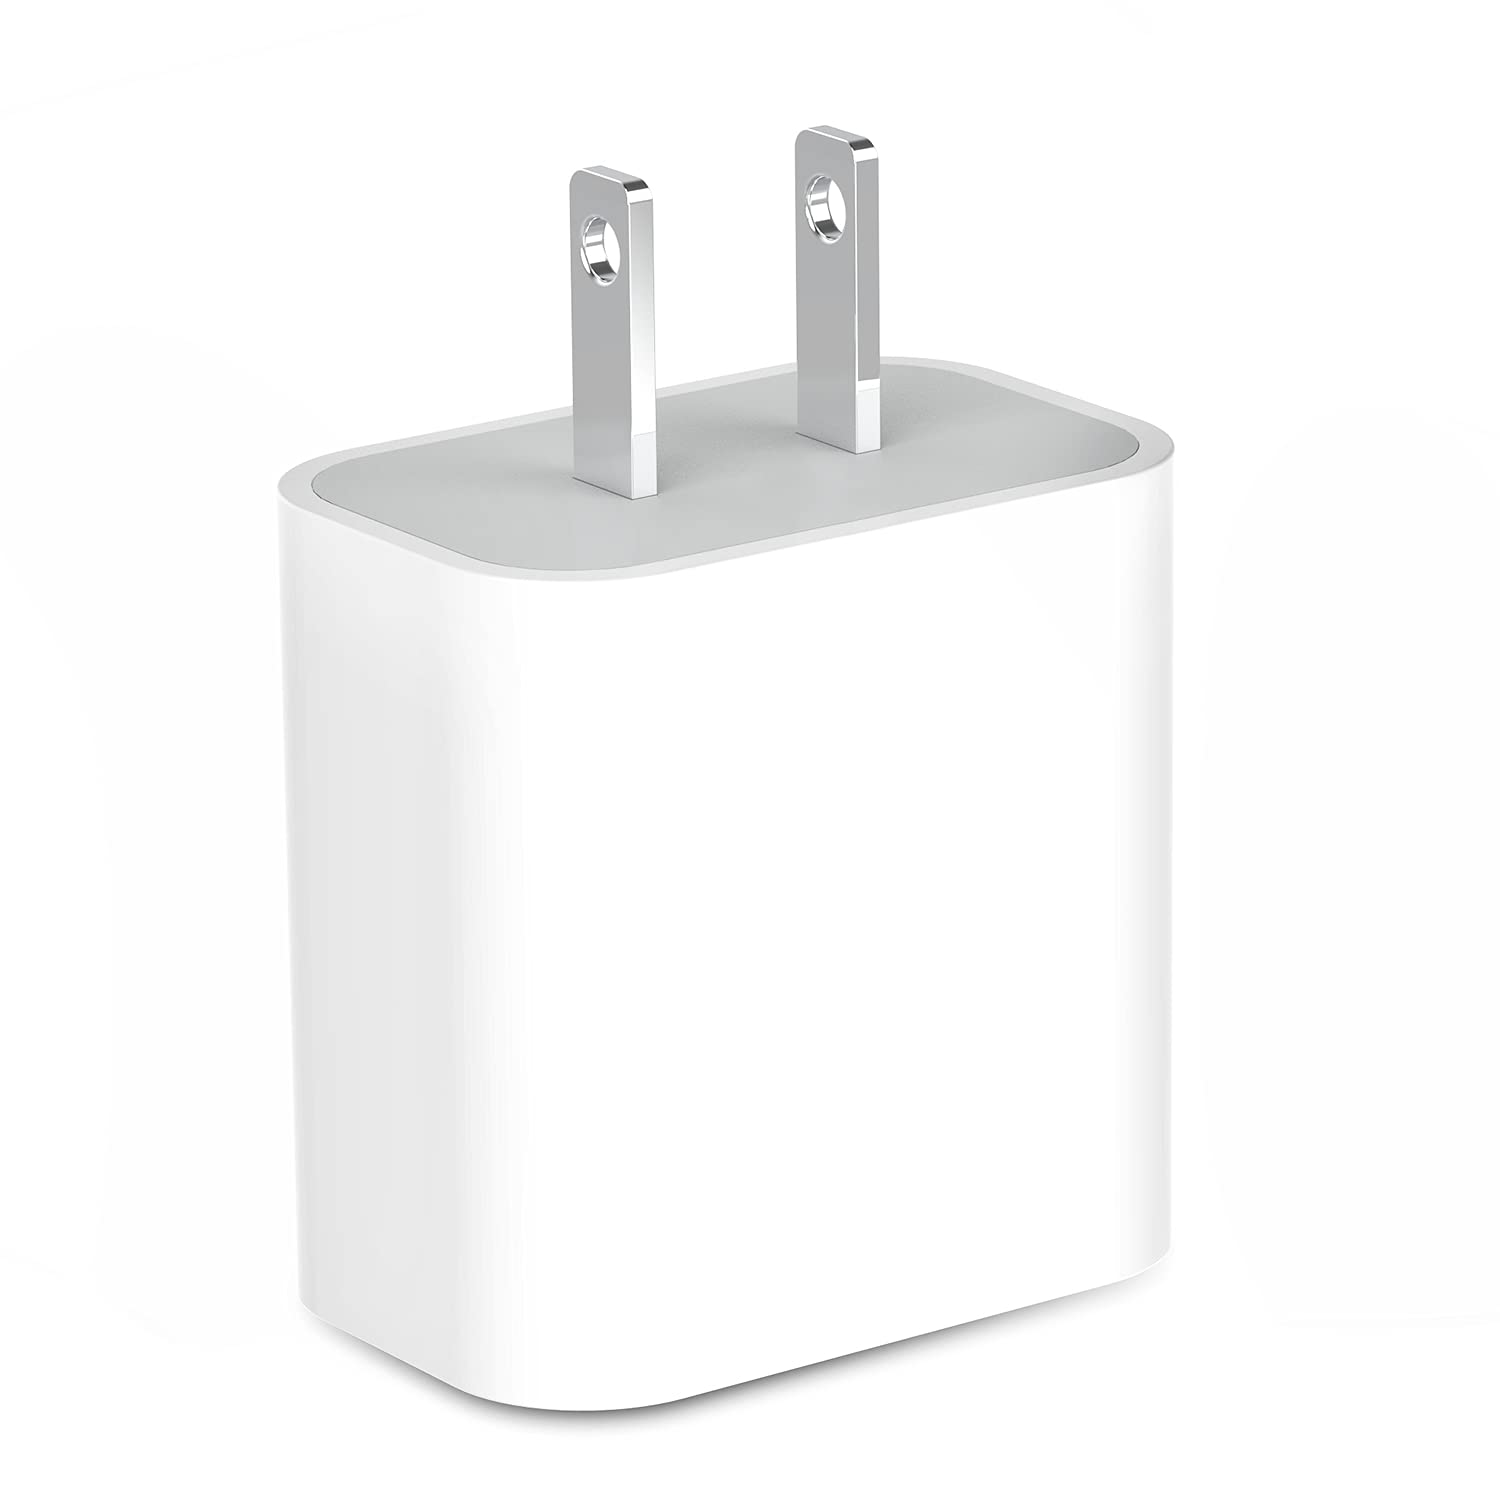 USB C Charger, 20W iPhone 12 Fast Charger Block USB Type C Wall Charger with PD 3.0, Durable Compact USB-C Power Delivery Adapter Compatible with iPhone 12/12 Pro Max 12 Mini, MagSafe Duo, 11 Pro Max